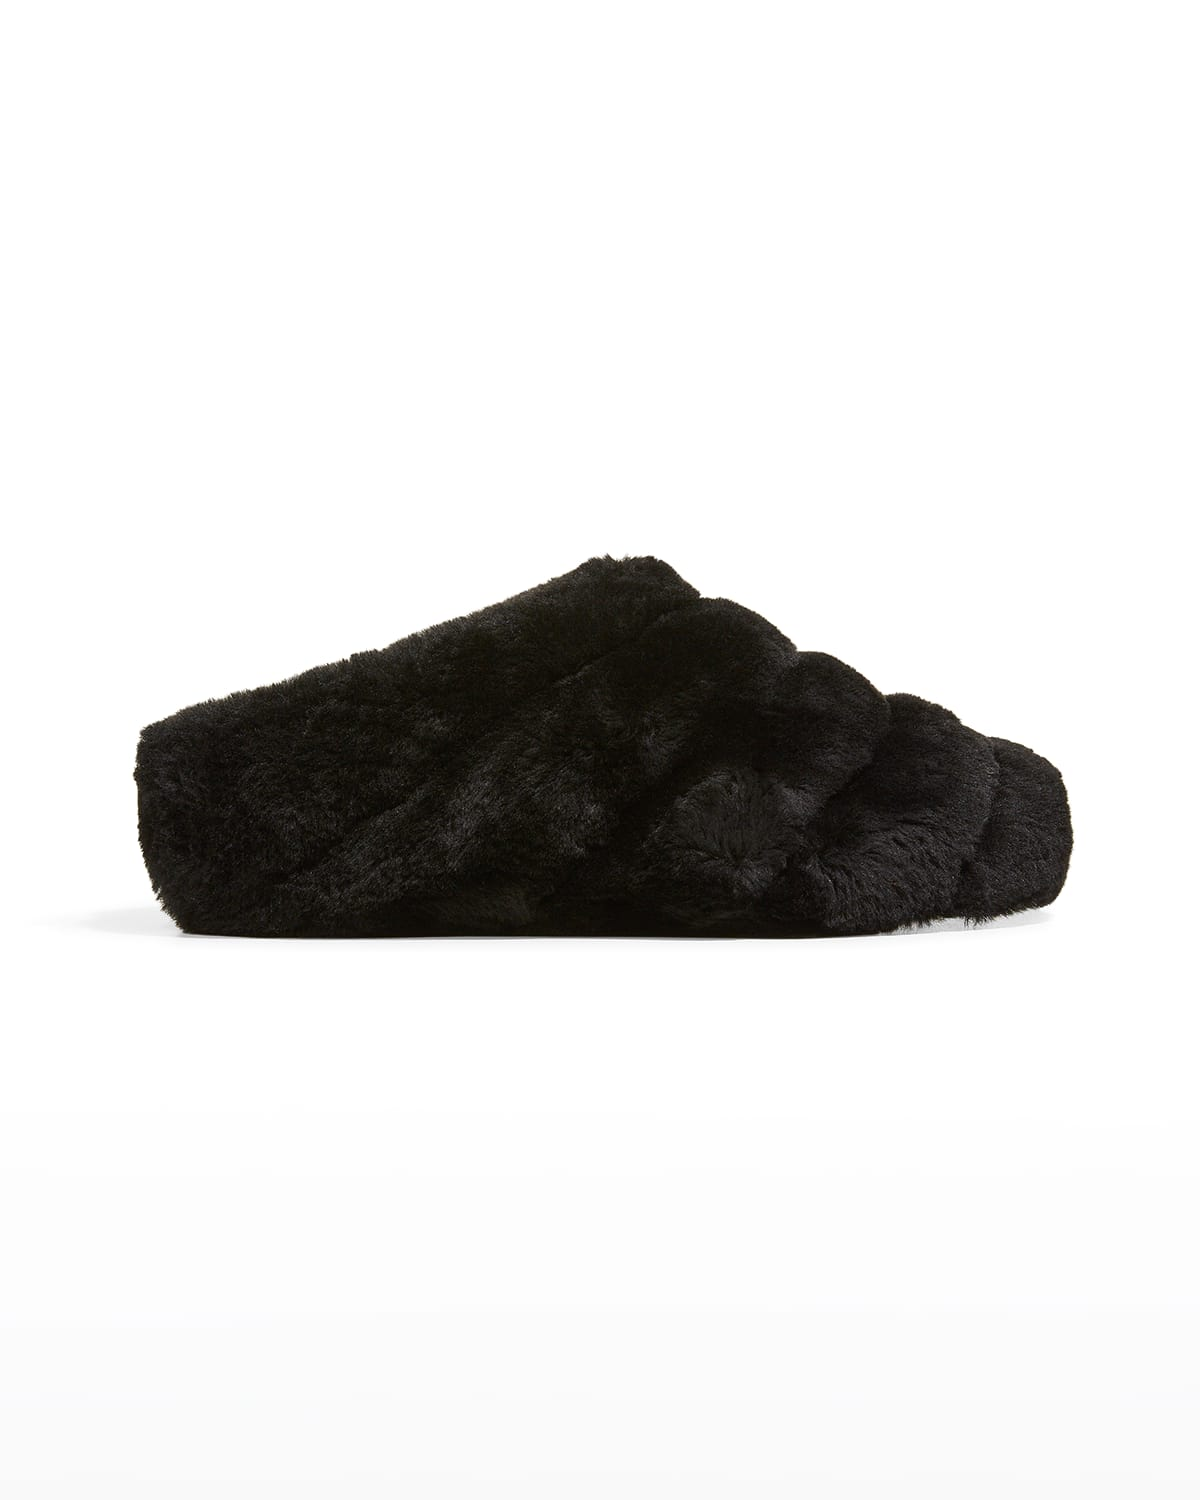 Rondo Shearling Cozy Slippers